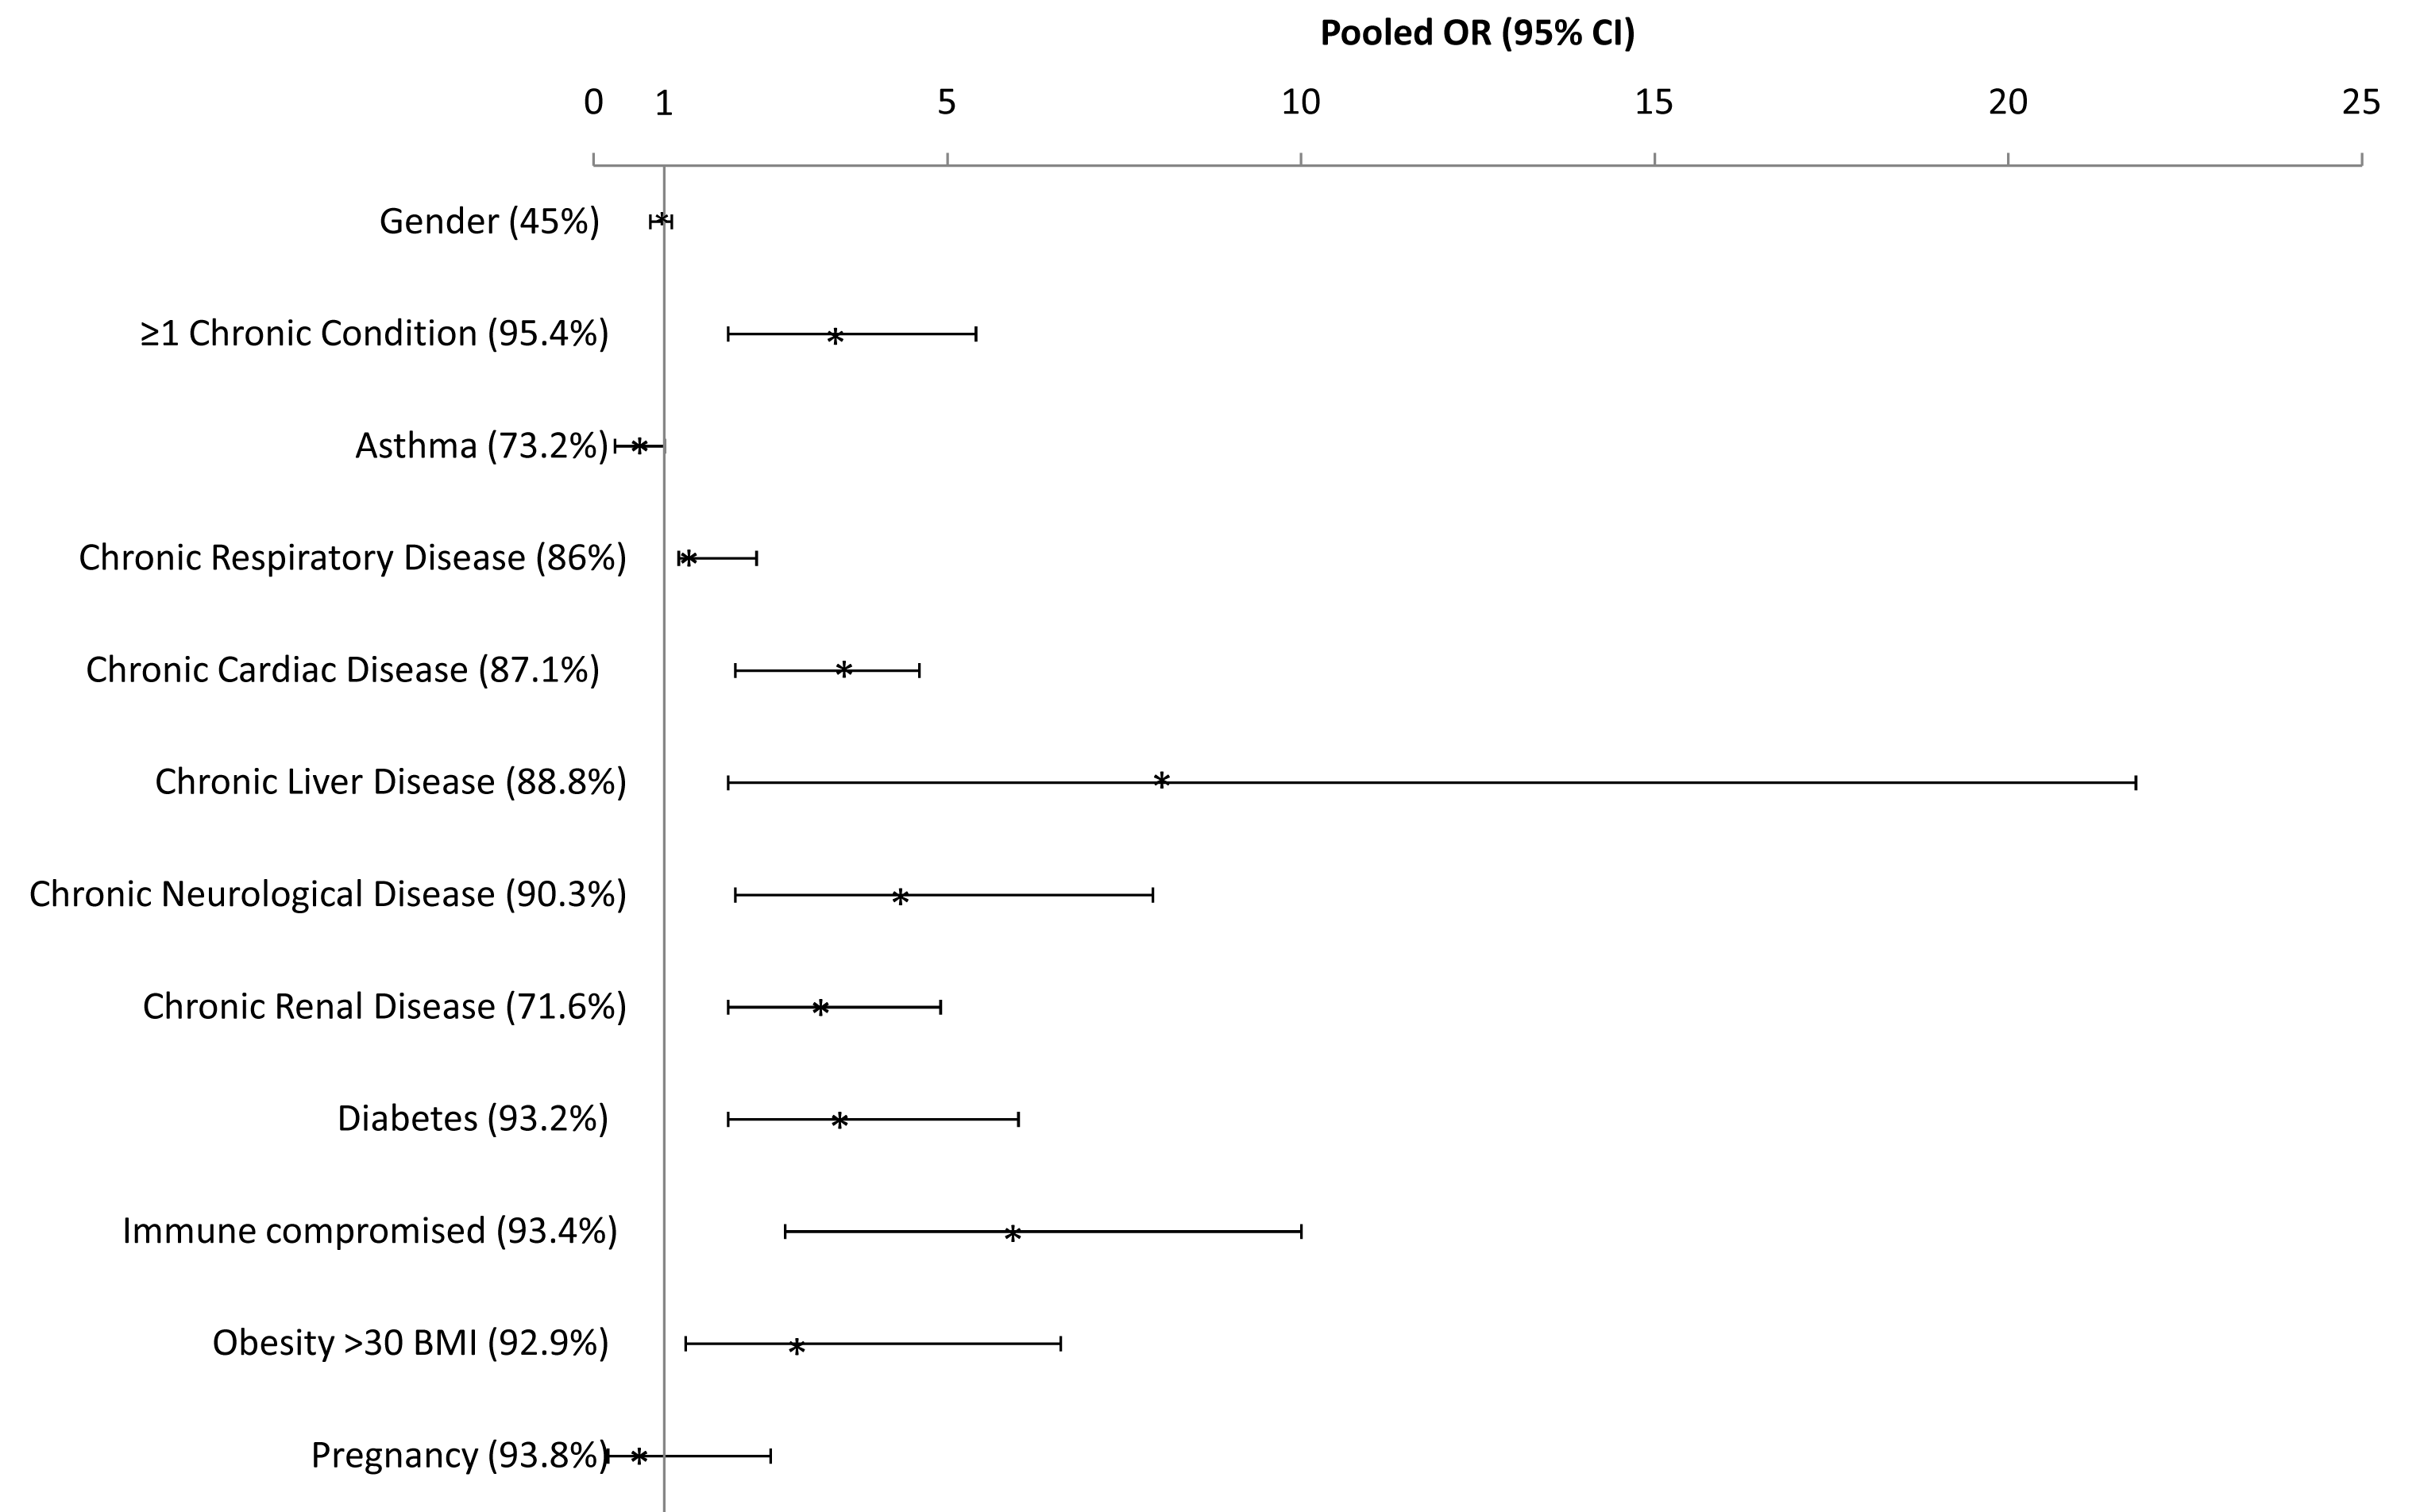 Pooled odds ratio and 95% CIs of risk of death given hospitalization for selected countries.